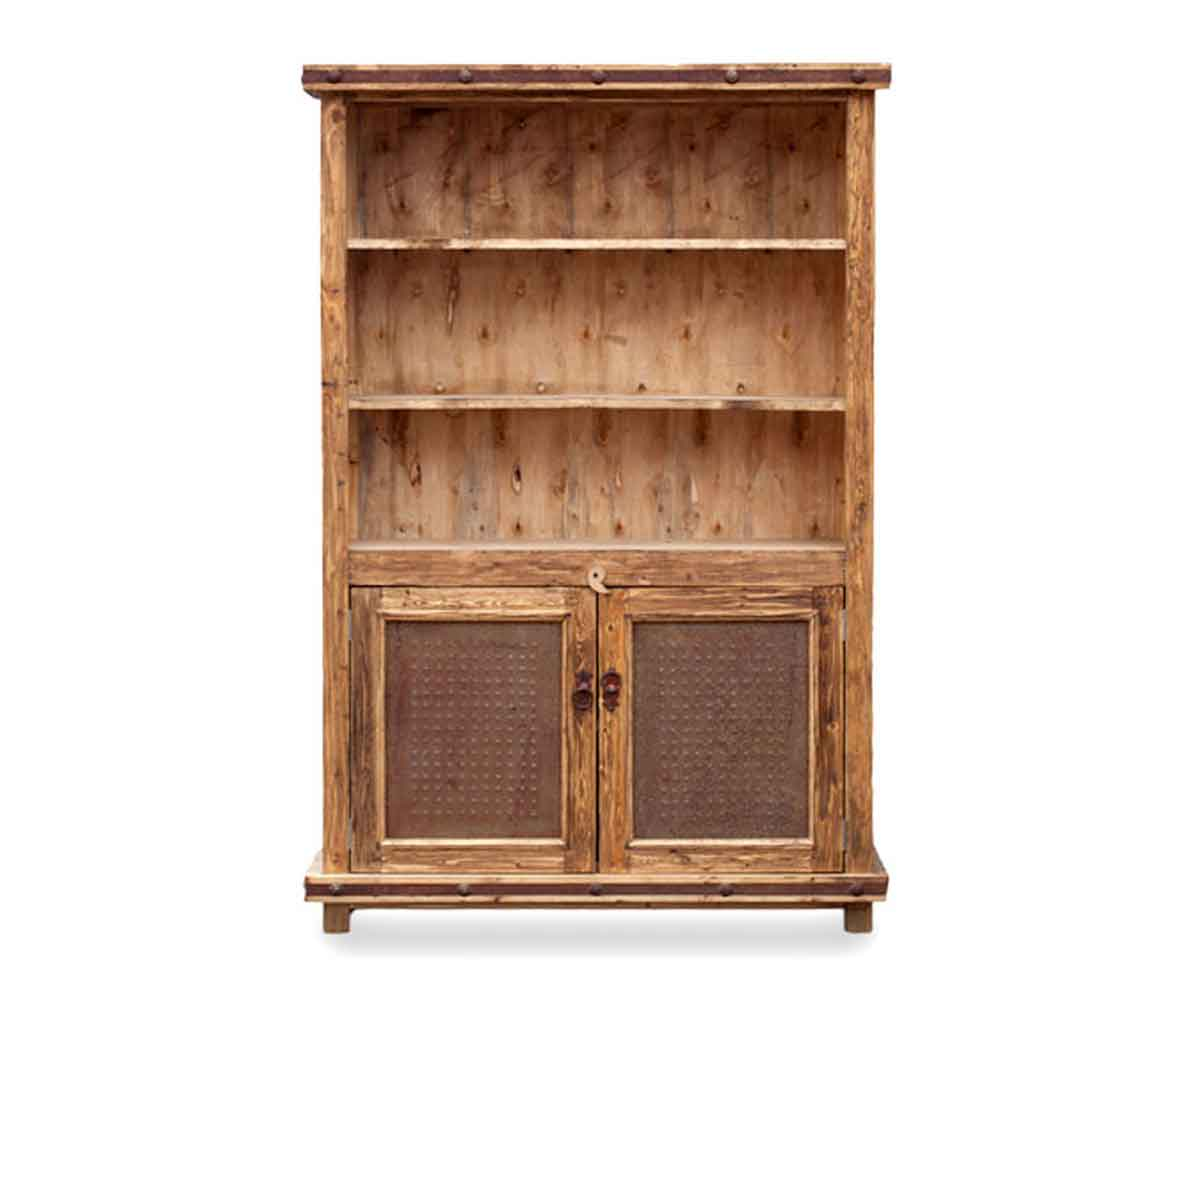 Order O Hara Rustic Linen Cabinet Online Mexican Rustic Bookcase For Sale